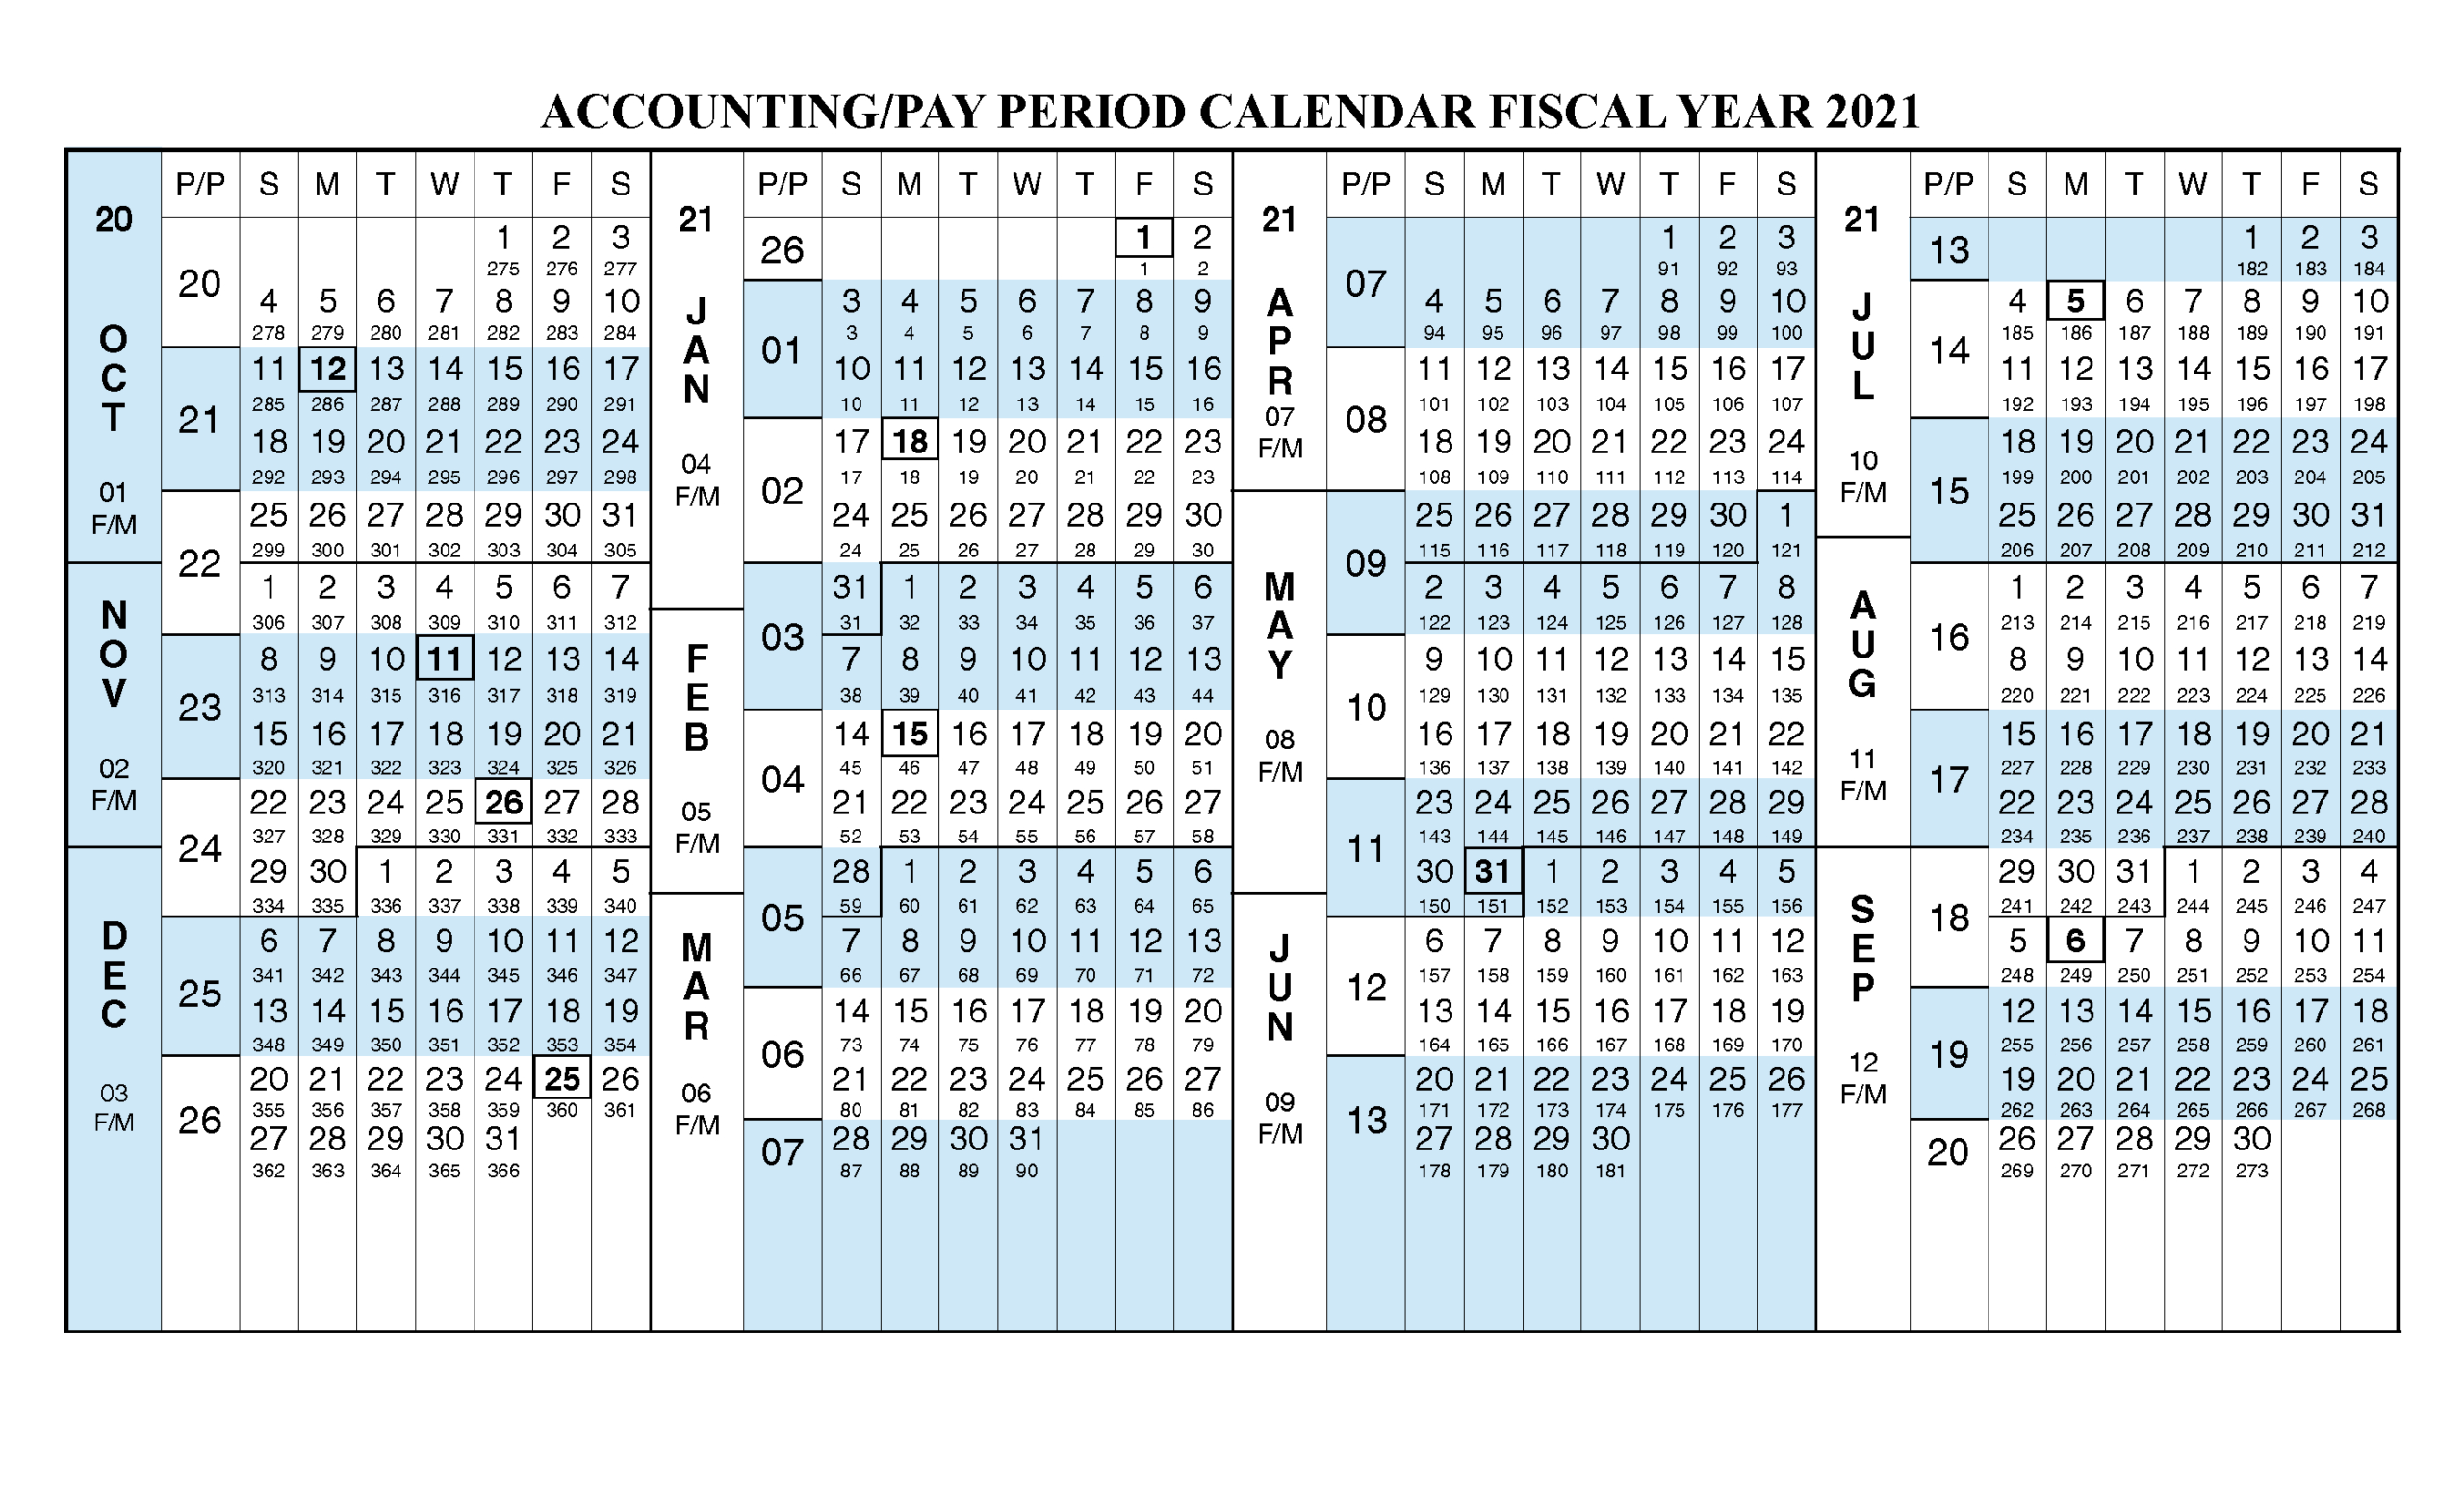 Payroll Calendar 2021 Fiscal Year Calendar [ Oct 2020 - Sep